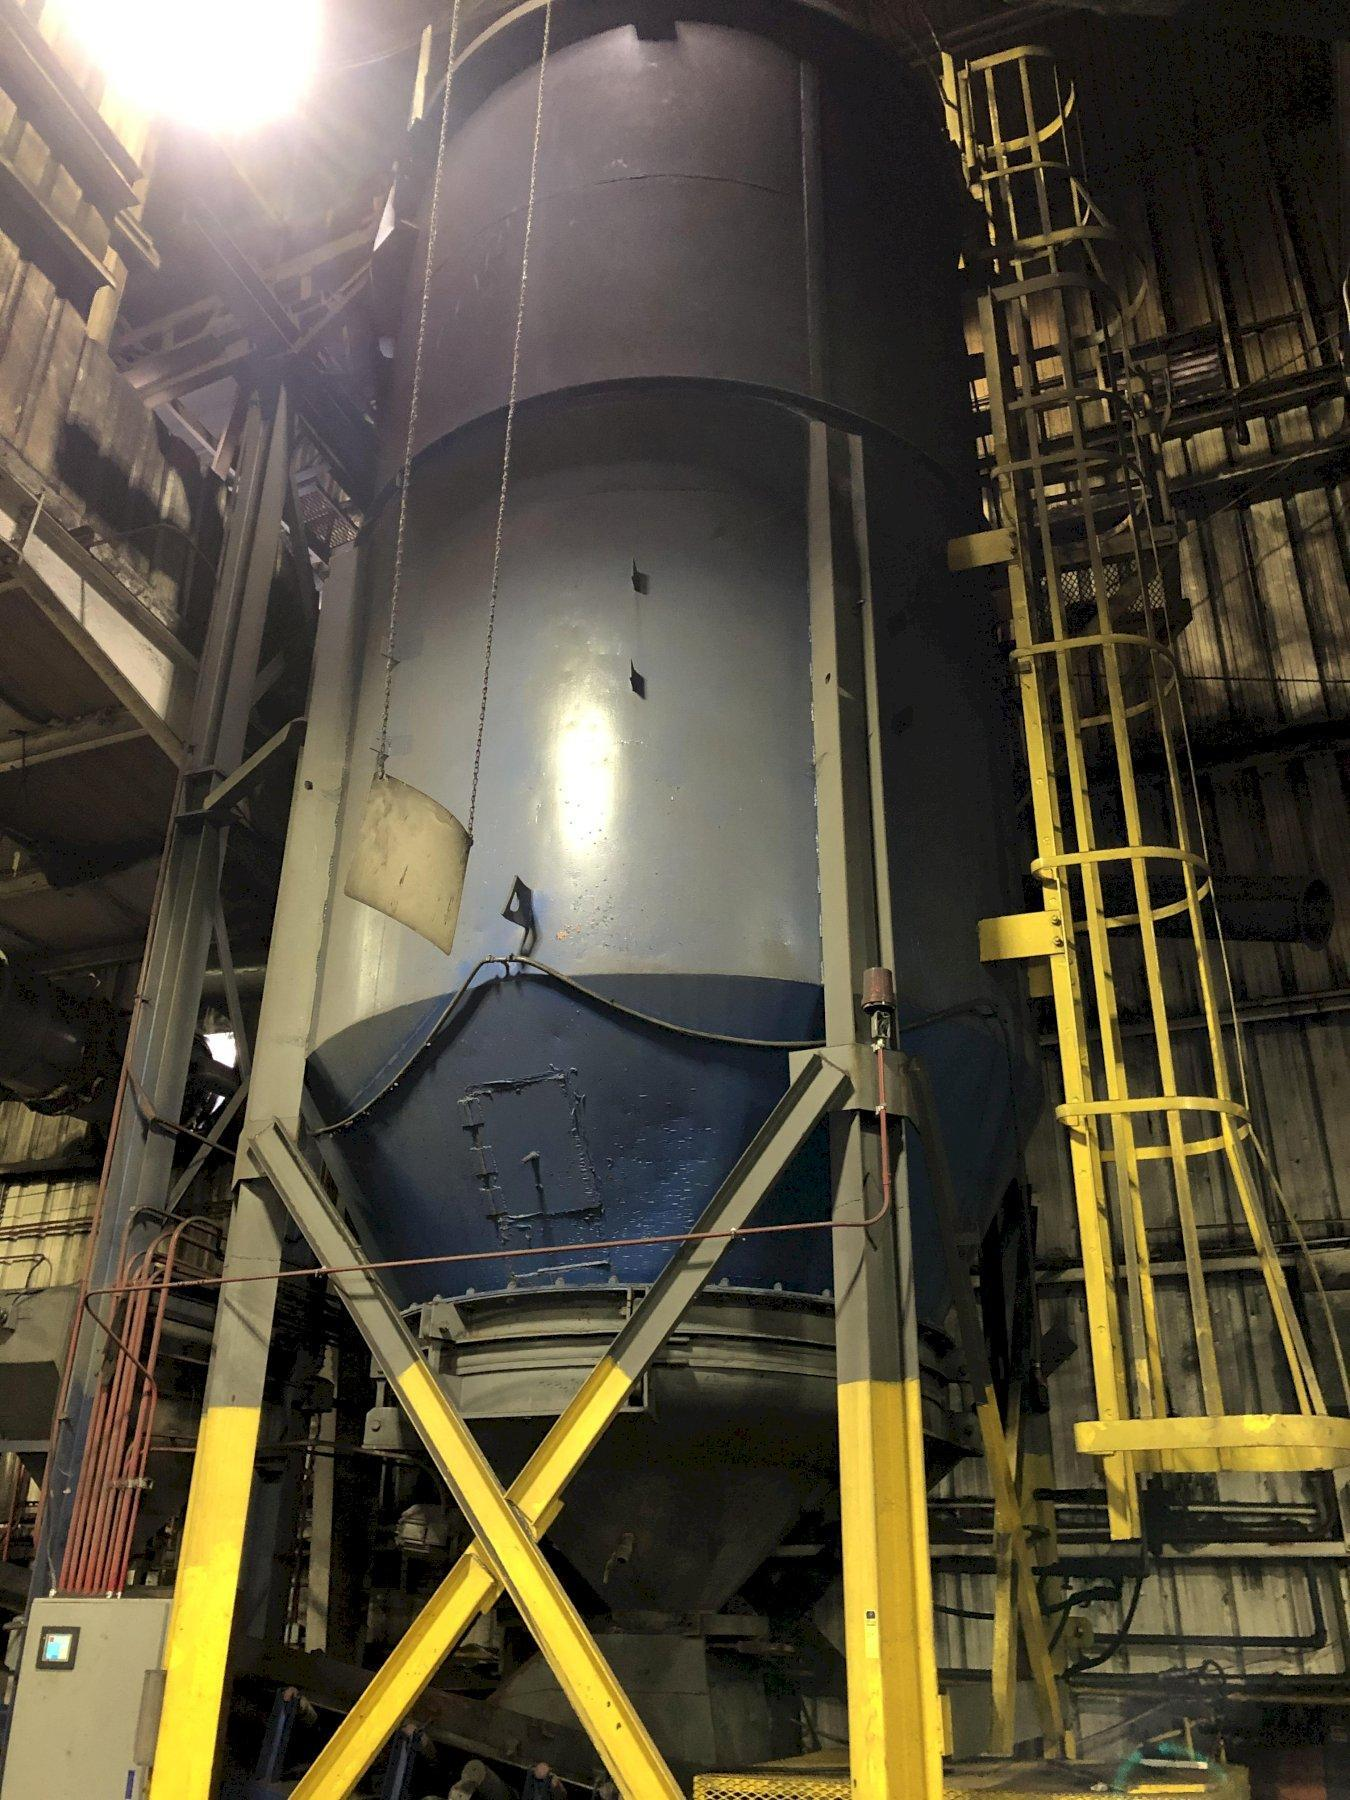 APPROX. 12' DIAMETER X 20' TALL SAND SILO WITH LIVE BOTTOM FEEDER AND SUPPORTS